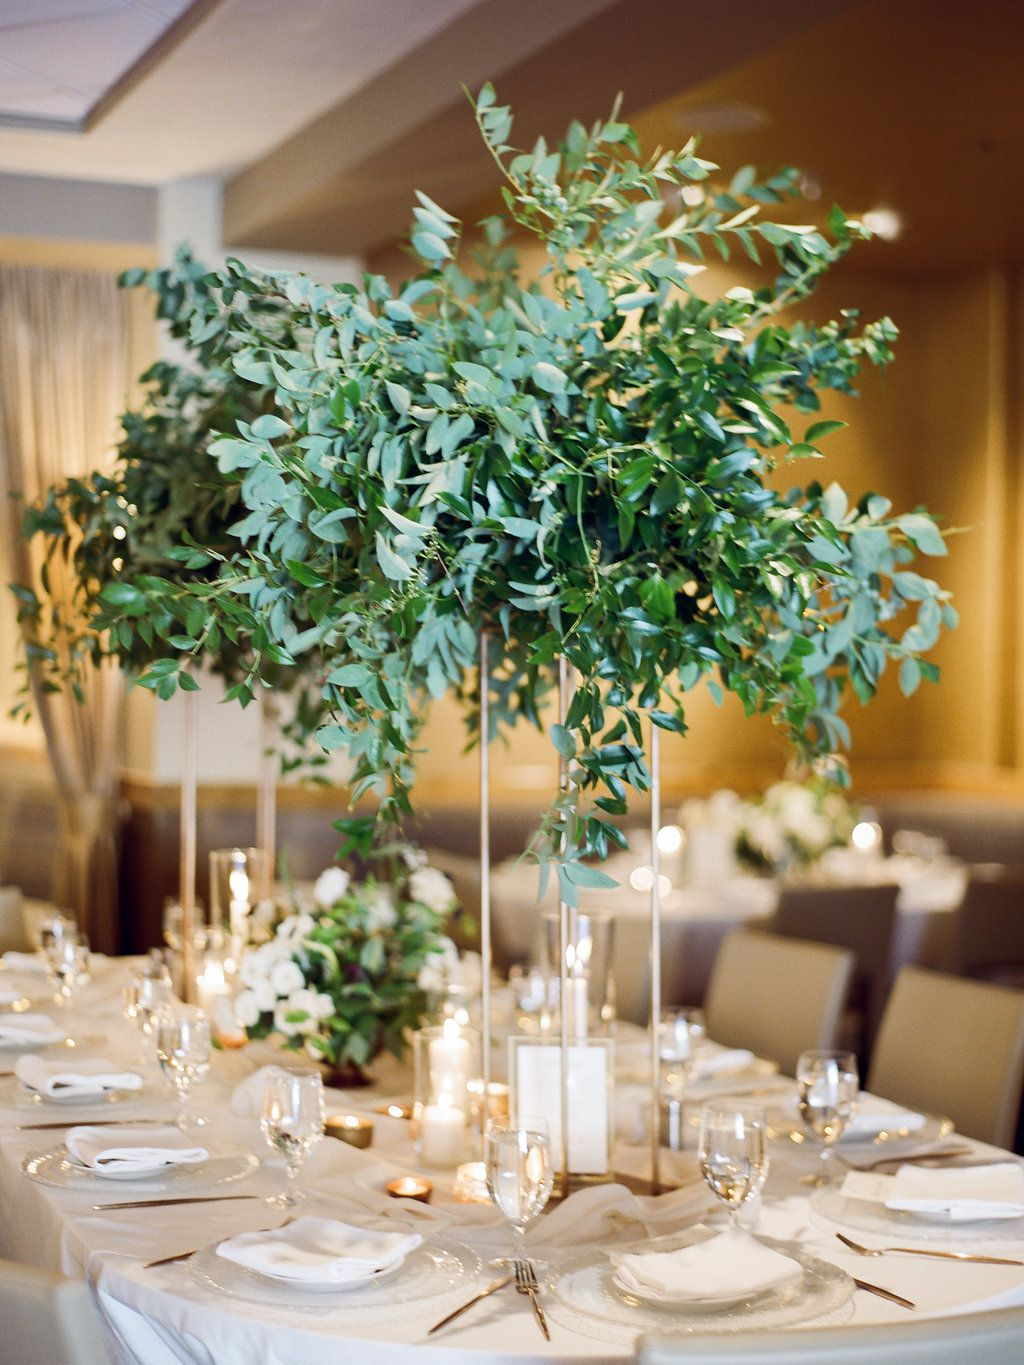 Lush Eucalyptus and Greenery Tall Centerpiece